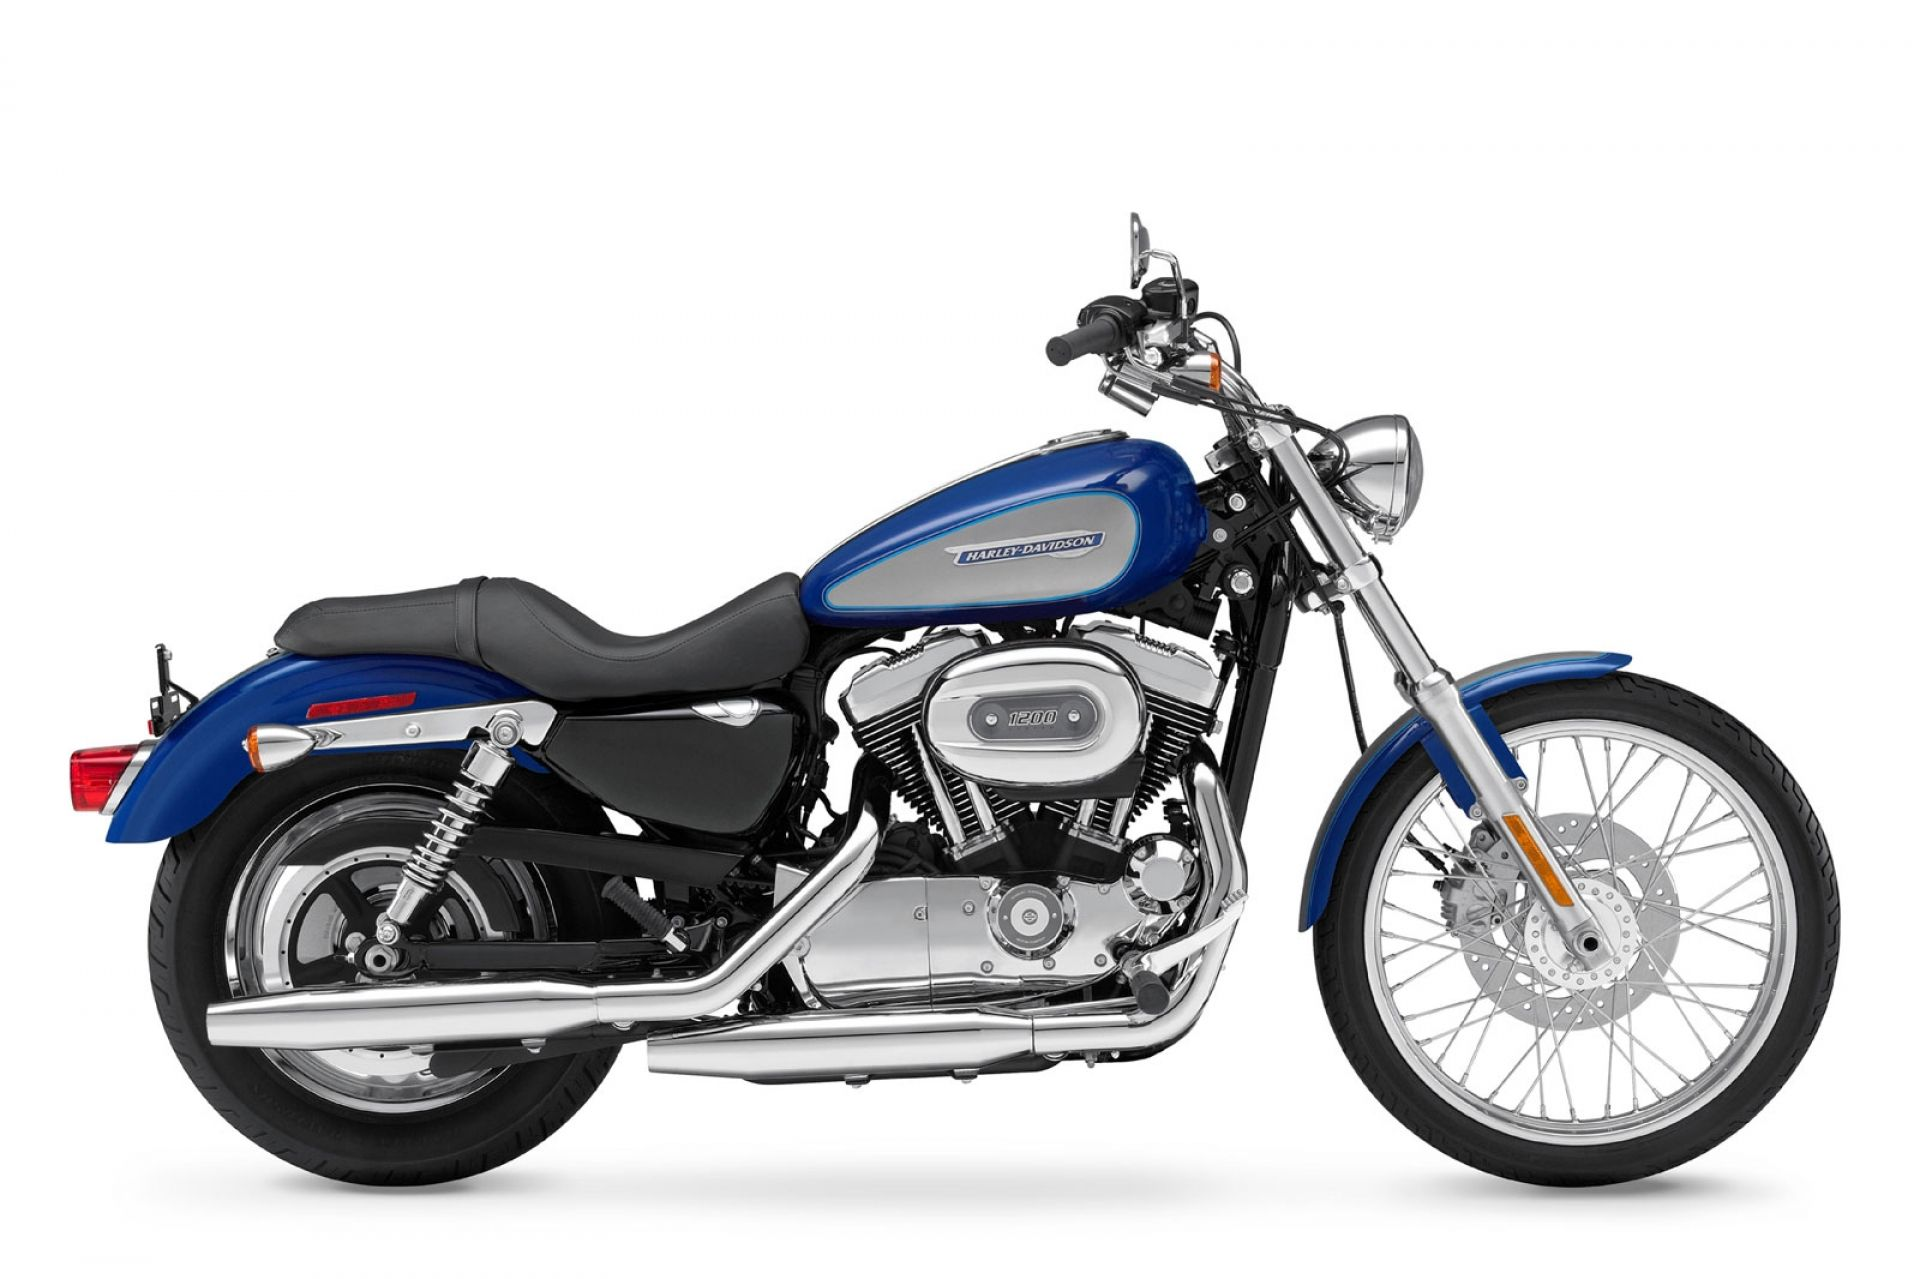 I love the classic look of the sportsters